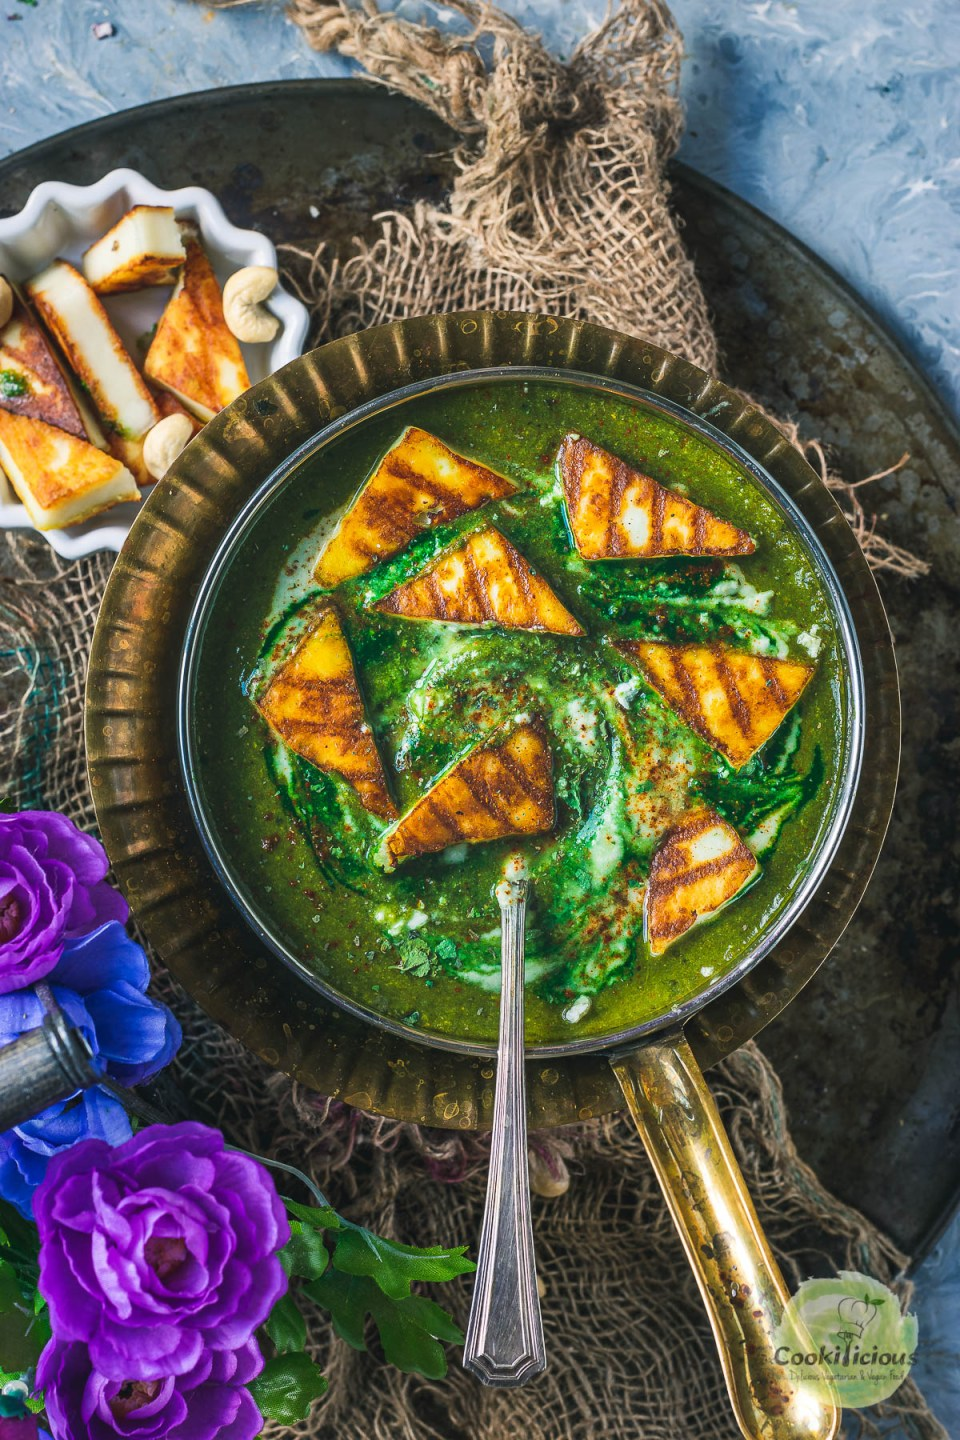 Restaurant Style Palak Paneer served in a round platter with a spoon in it